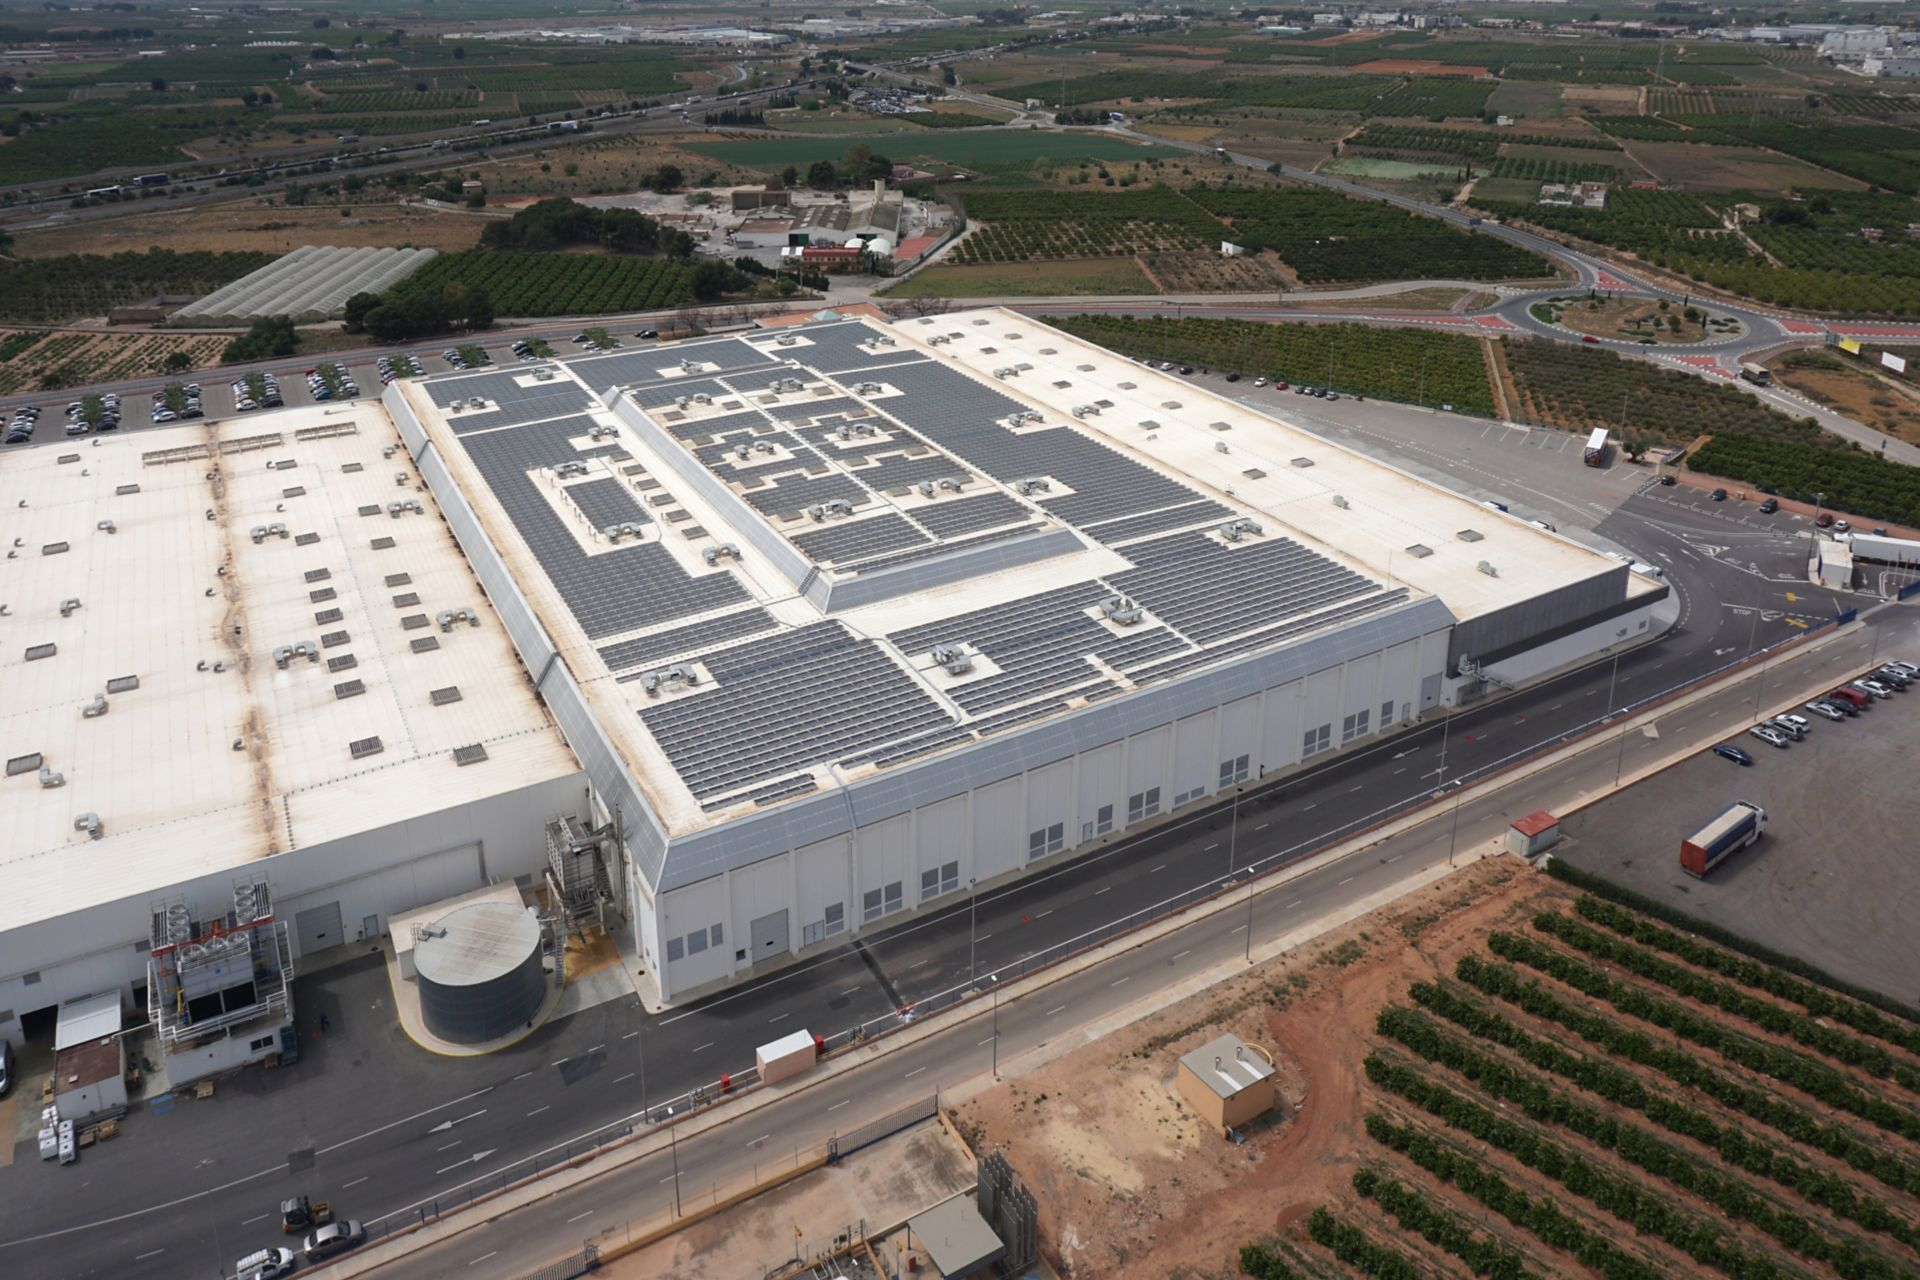 Sika SolarMount-1 on 1.1 MWp solar roof installed in south configuration in Valencia, Spain